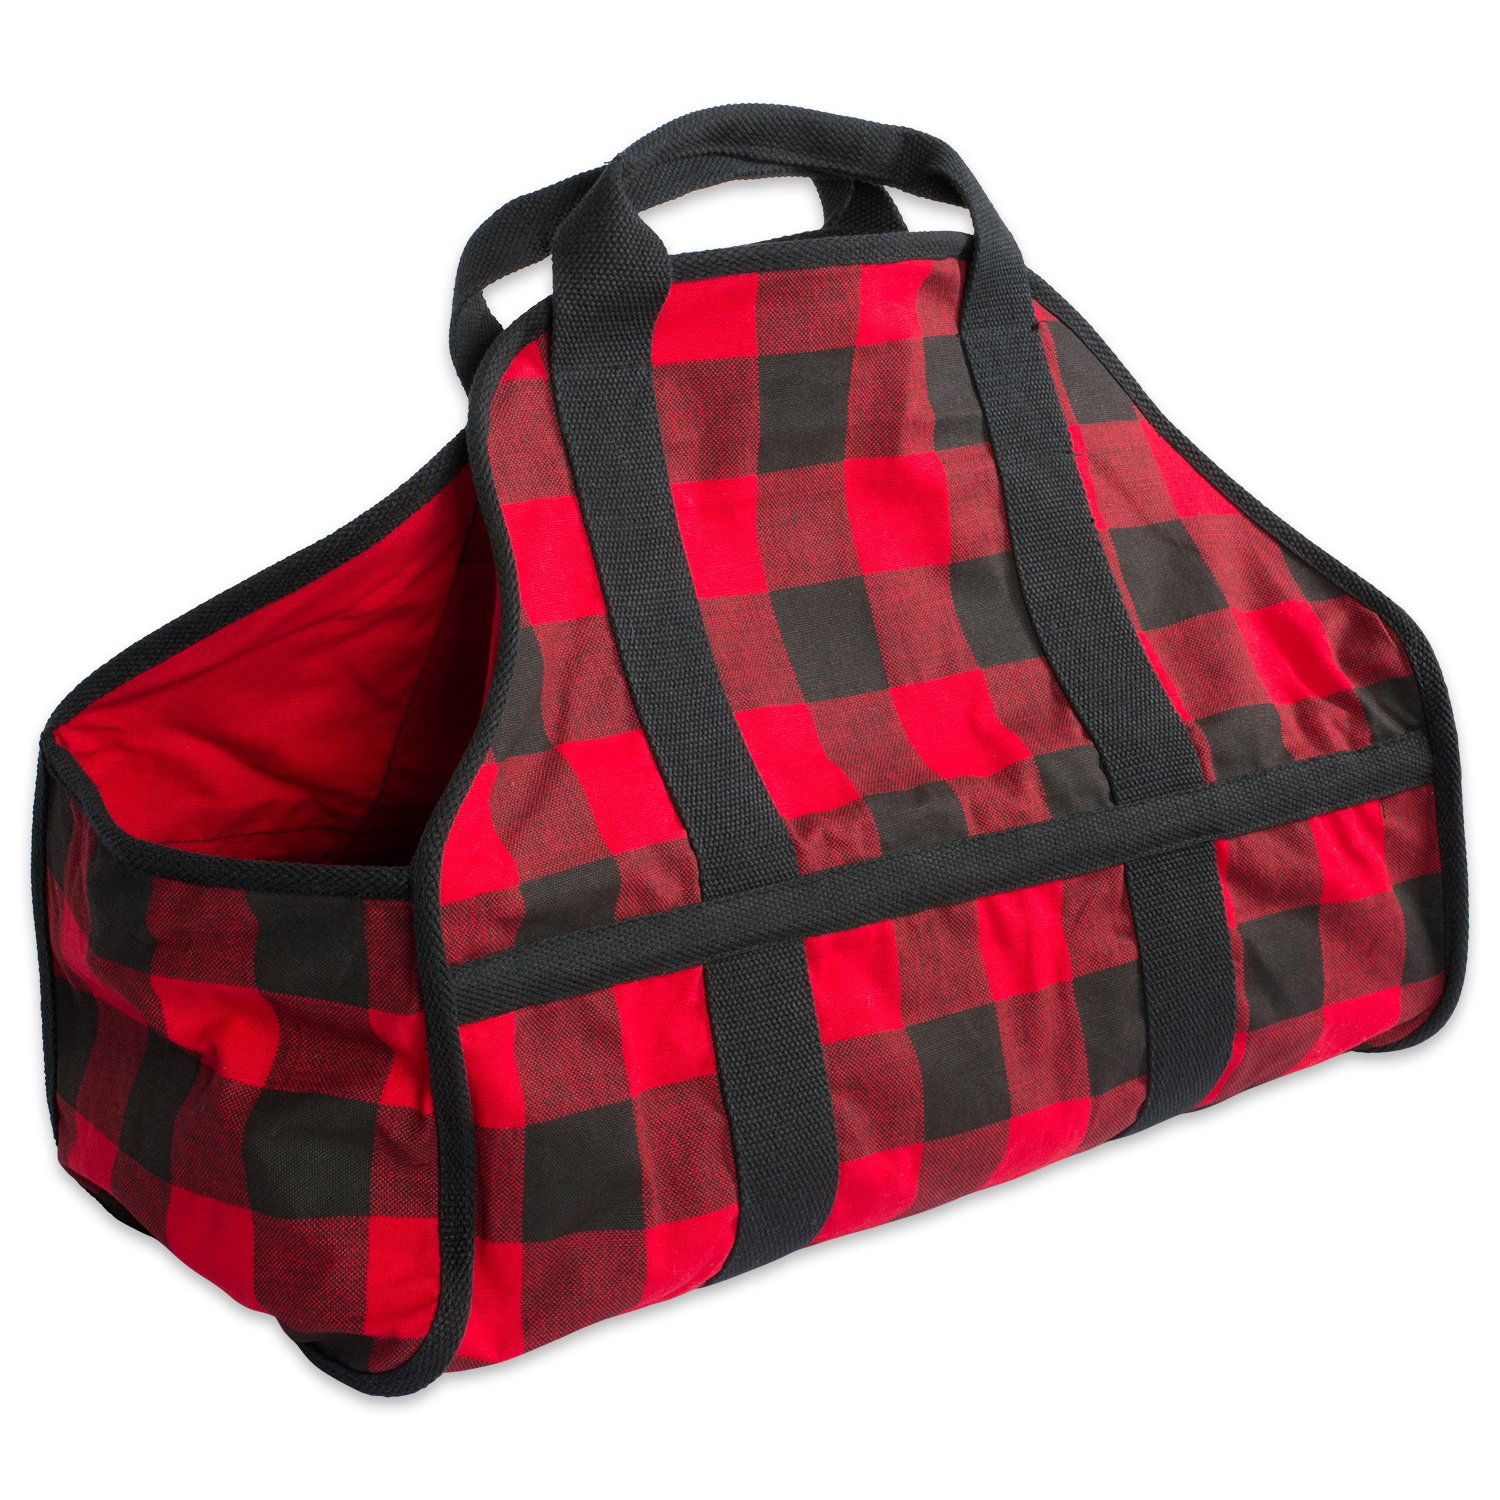 DII CAMZ37646 Cotton Heavy Duty Canvas Firewood Log Carrier Tote Bag, 22 x 16.5 x 10''